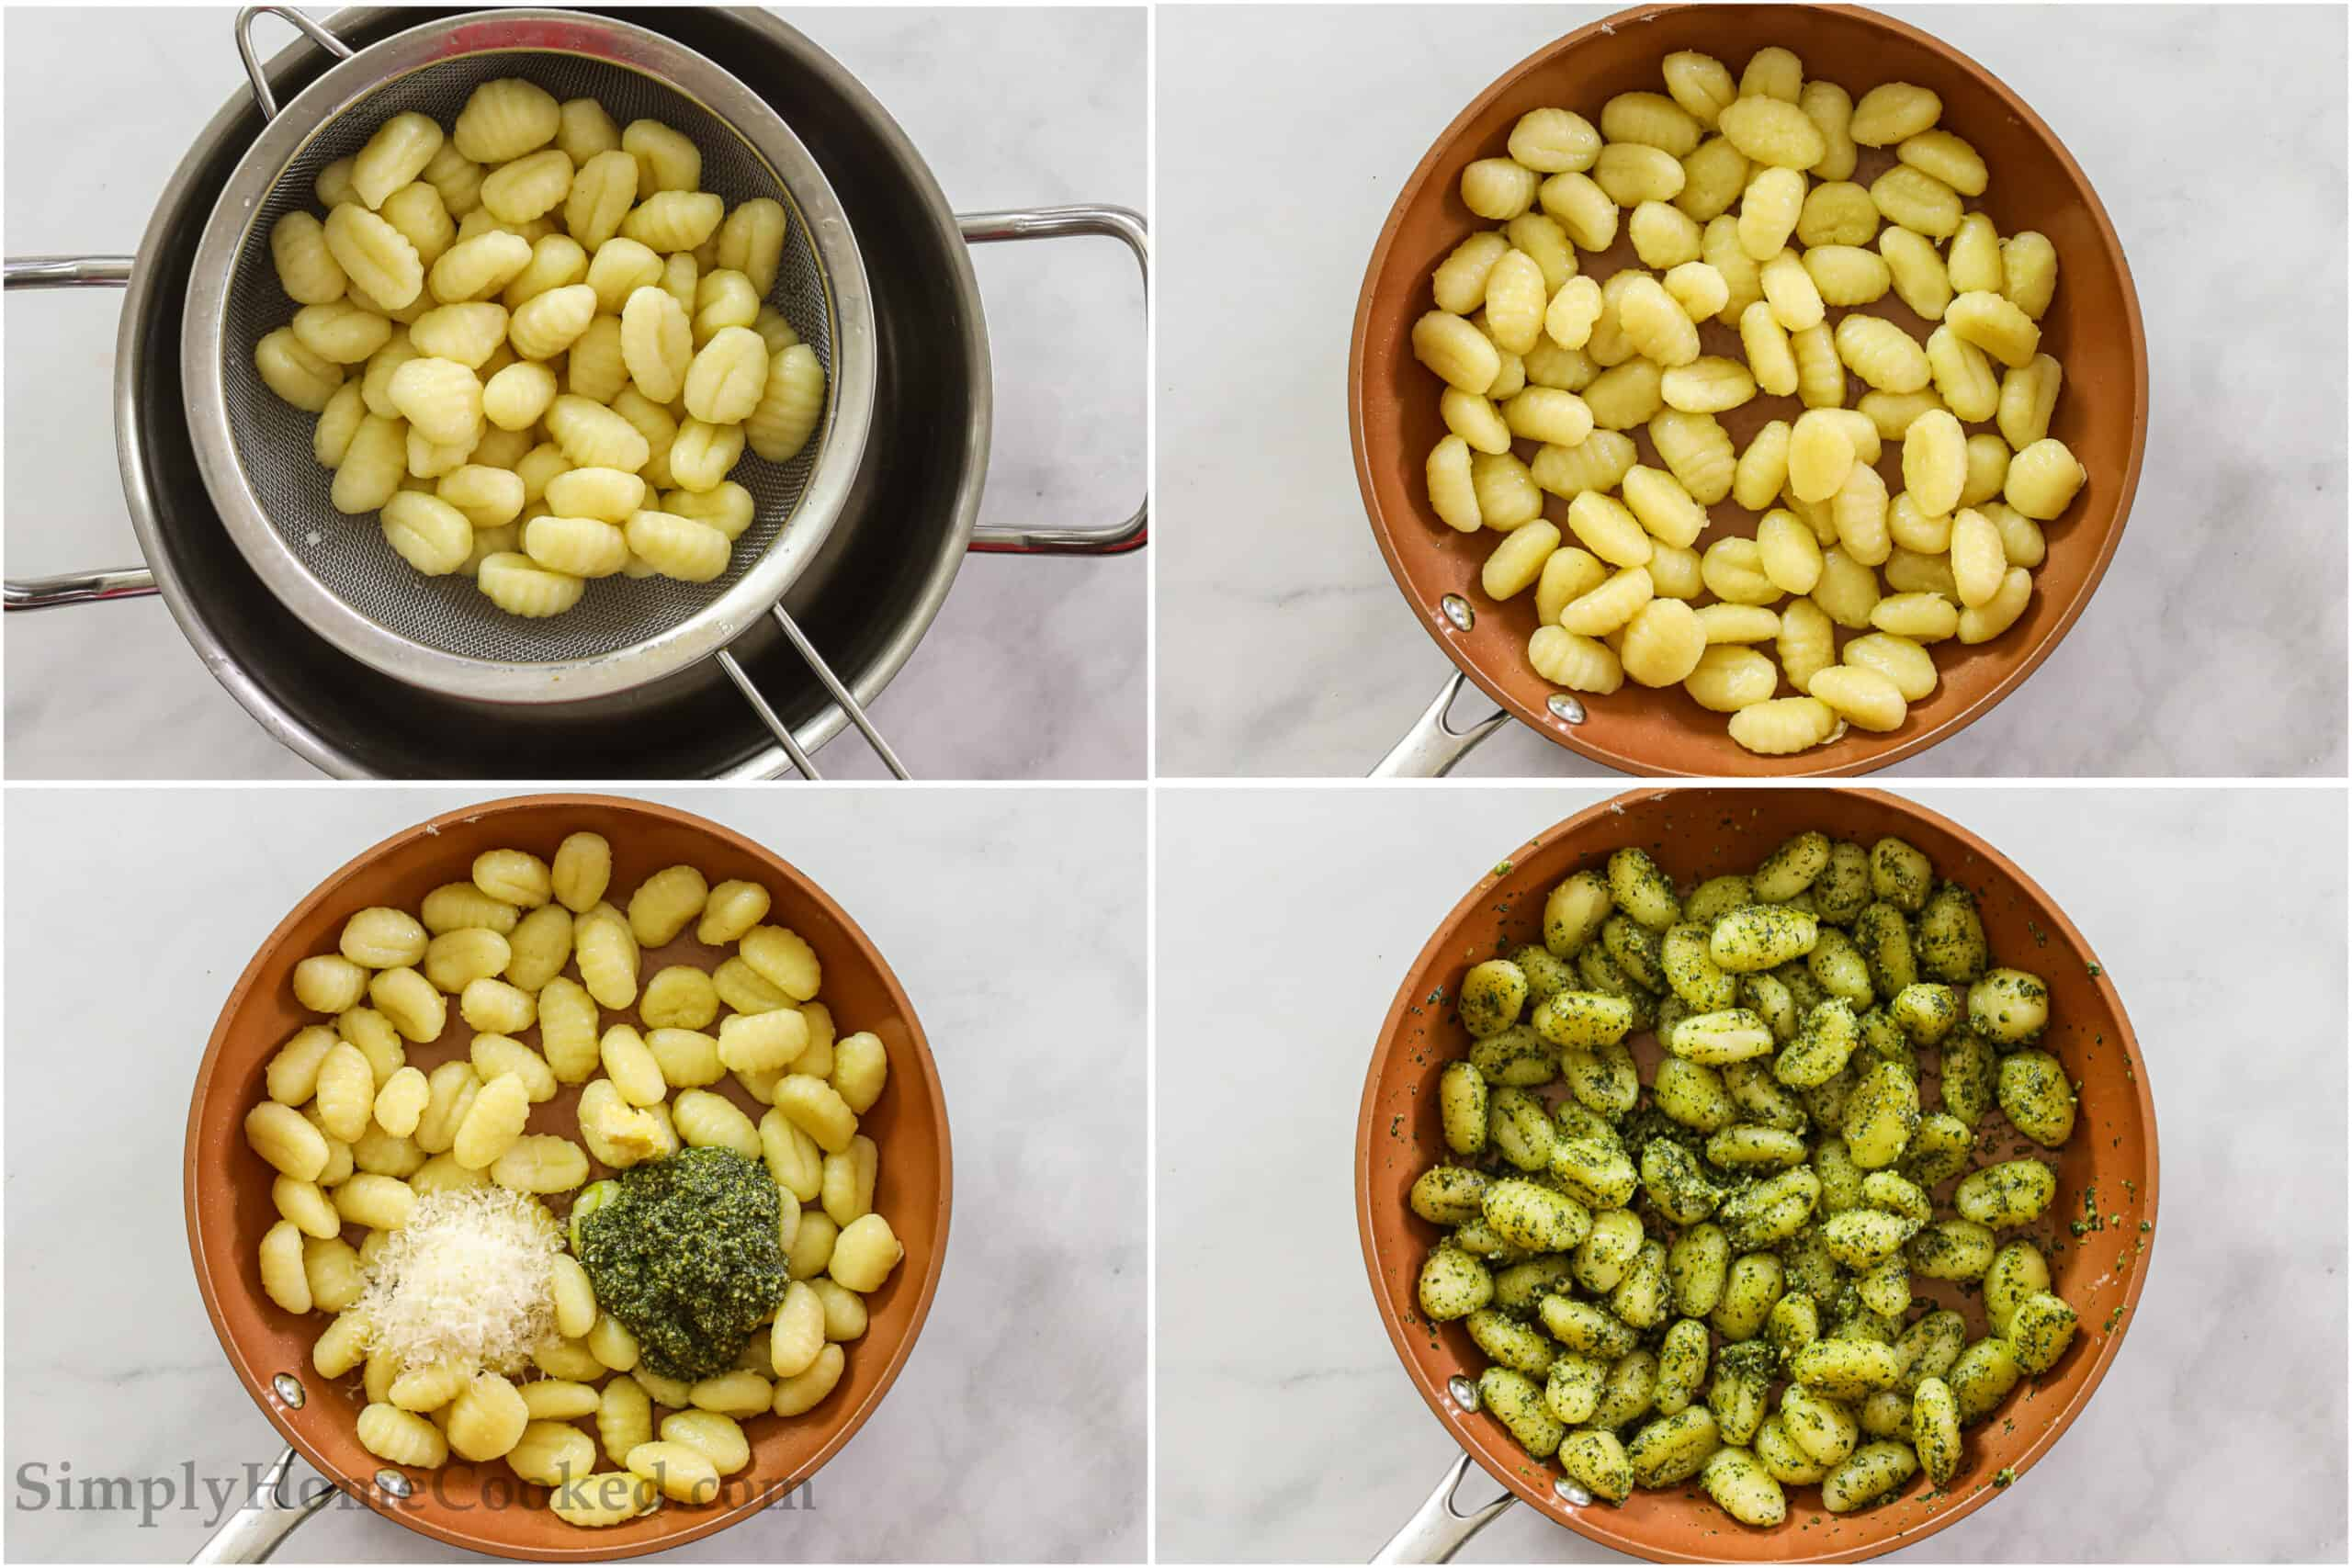 Steps to make Pesto Gnocchi, including cooking the gnocchi and draining the water, pan-frying the gnocchi in a skillet, and then adding the Parmesan, basil pesto, garlic, salt, and pepper, and mixing well.